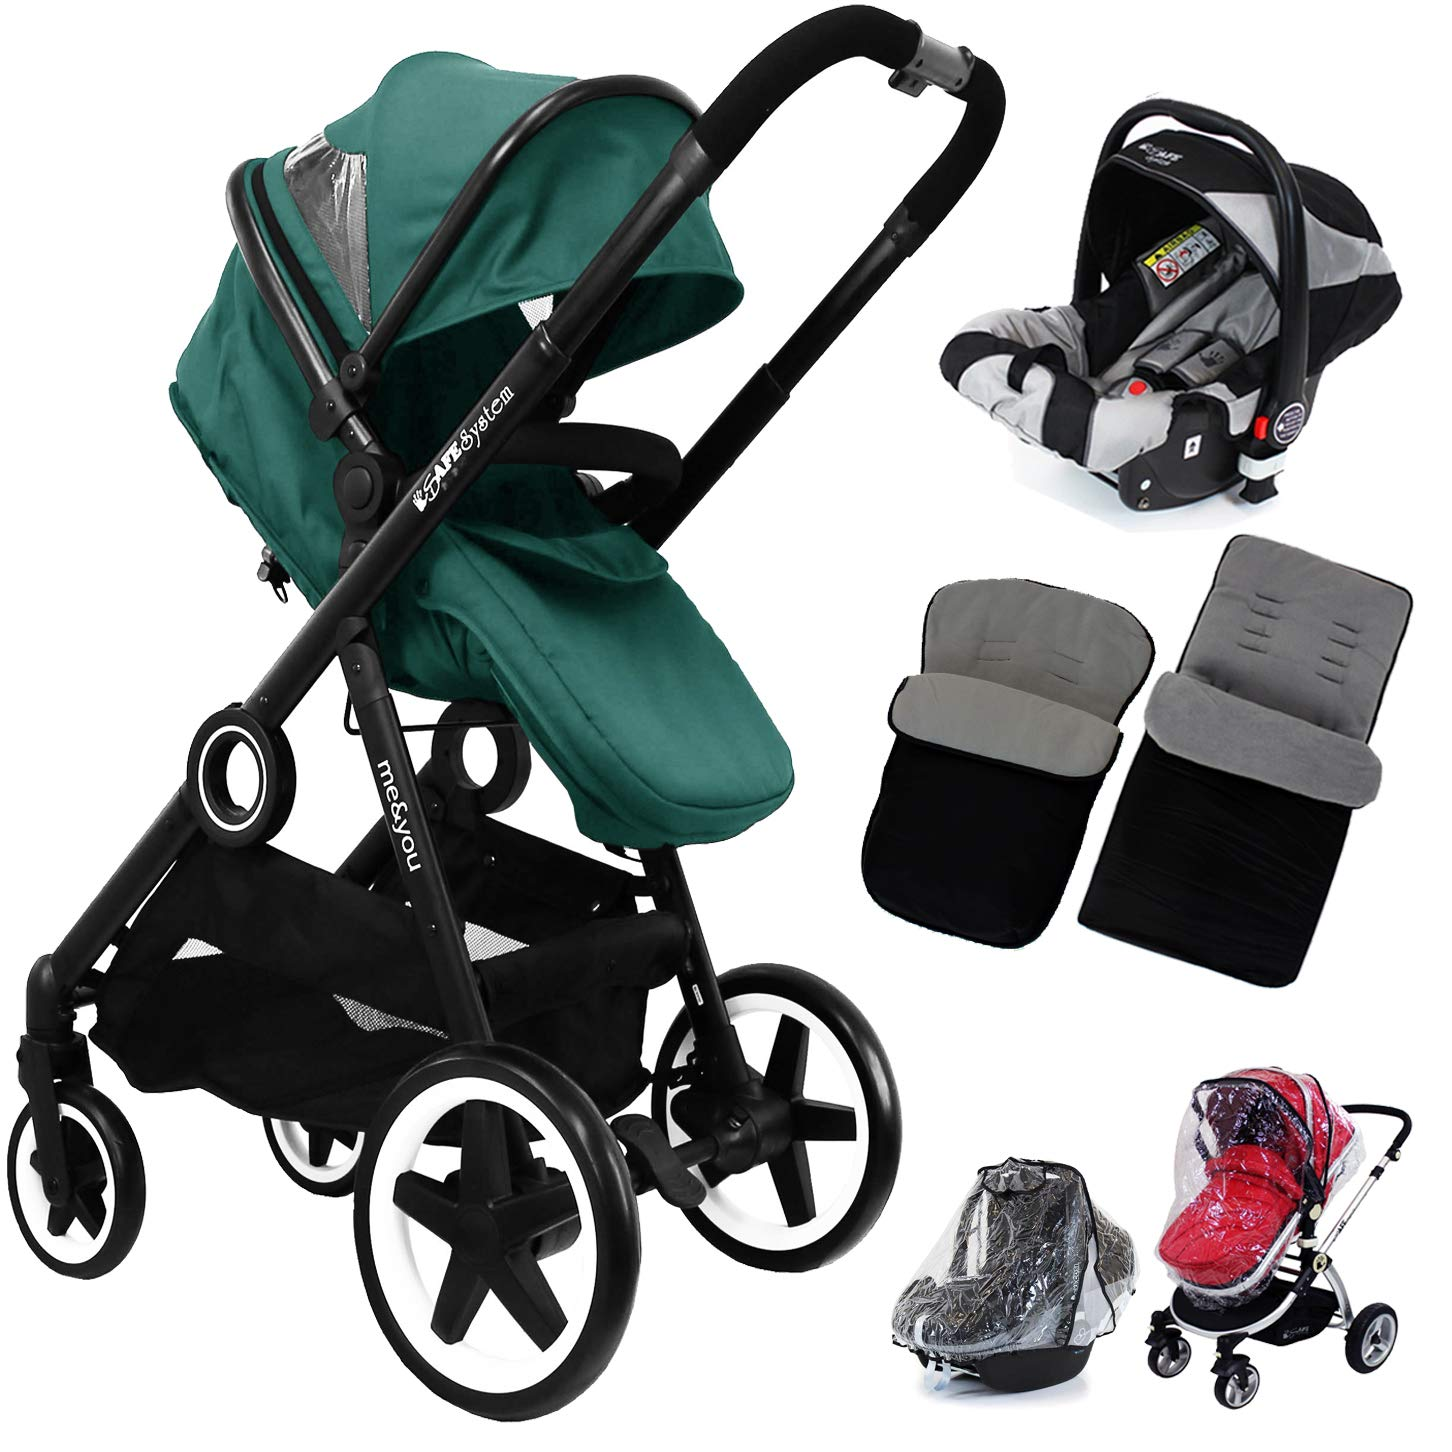 iSafe Me&You 2in1 Pram with iSafe Car Seat & X2 Footmuffs & Rain Covers - Teal